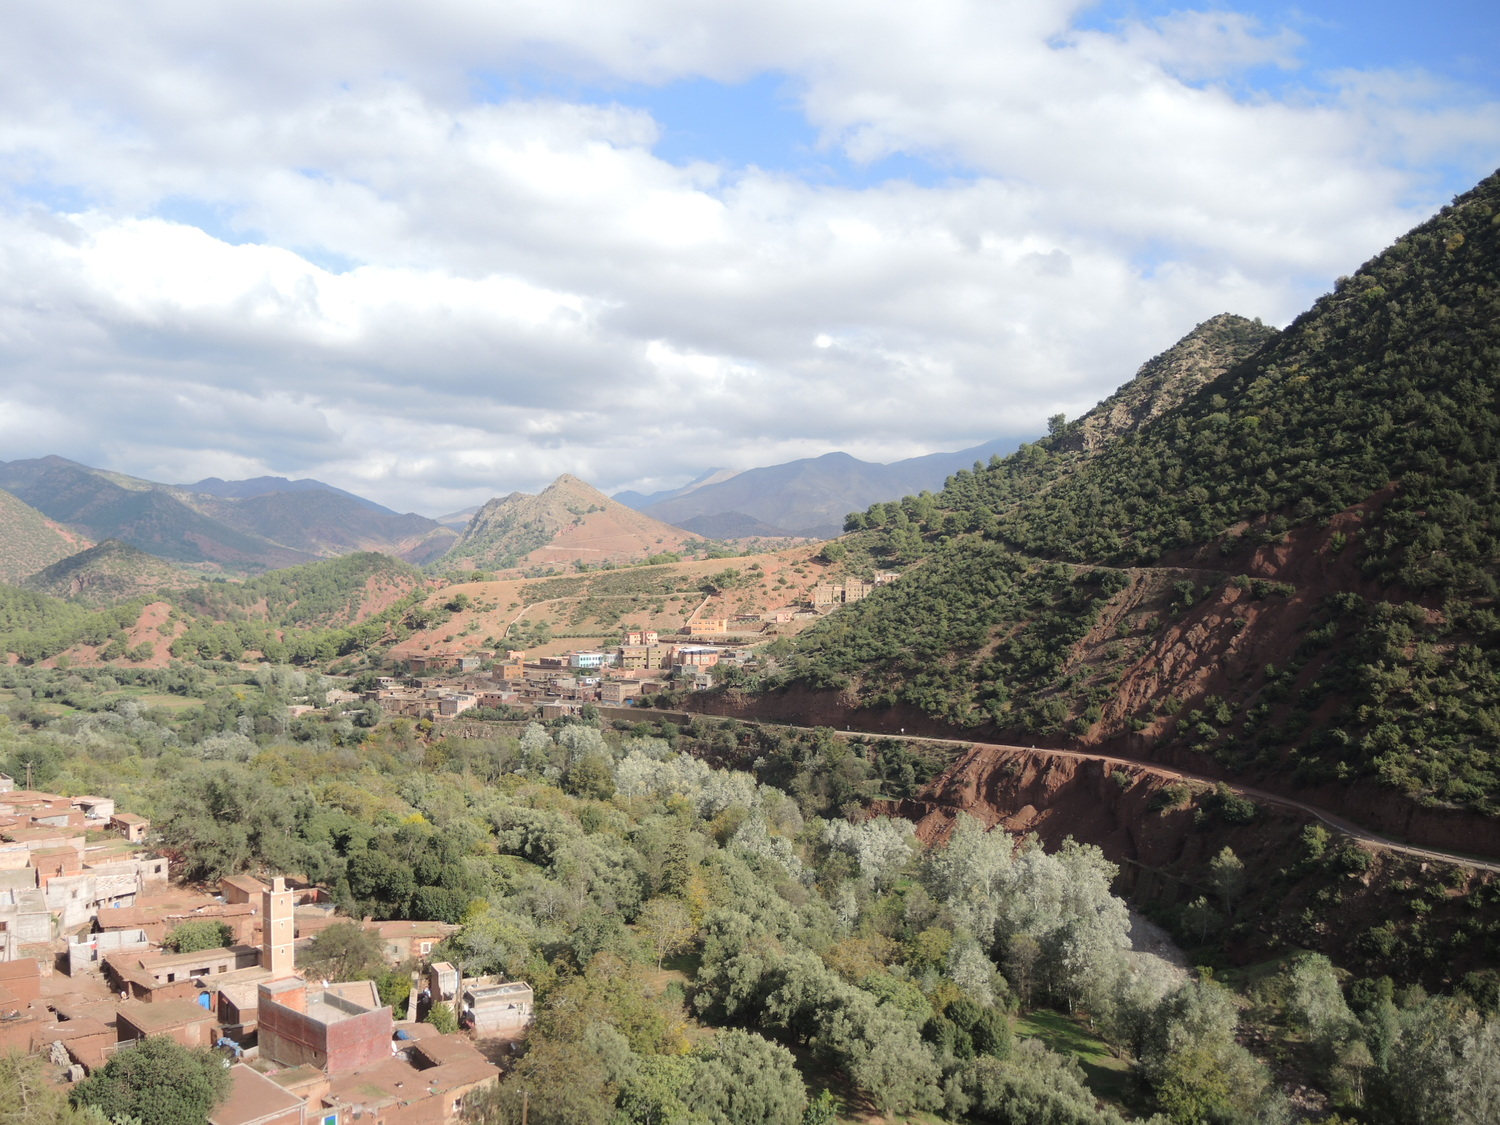 Green valleys on the northern side of the Atlas Mountains